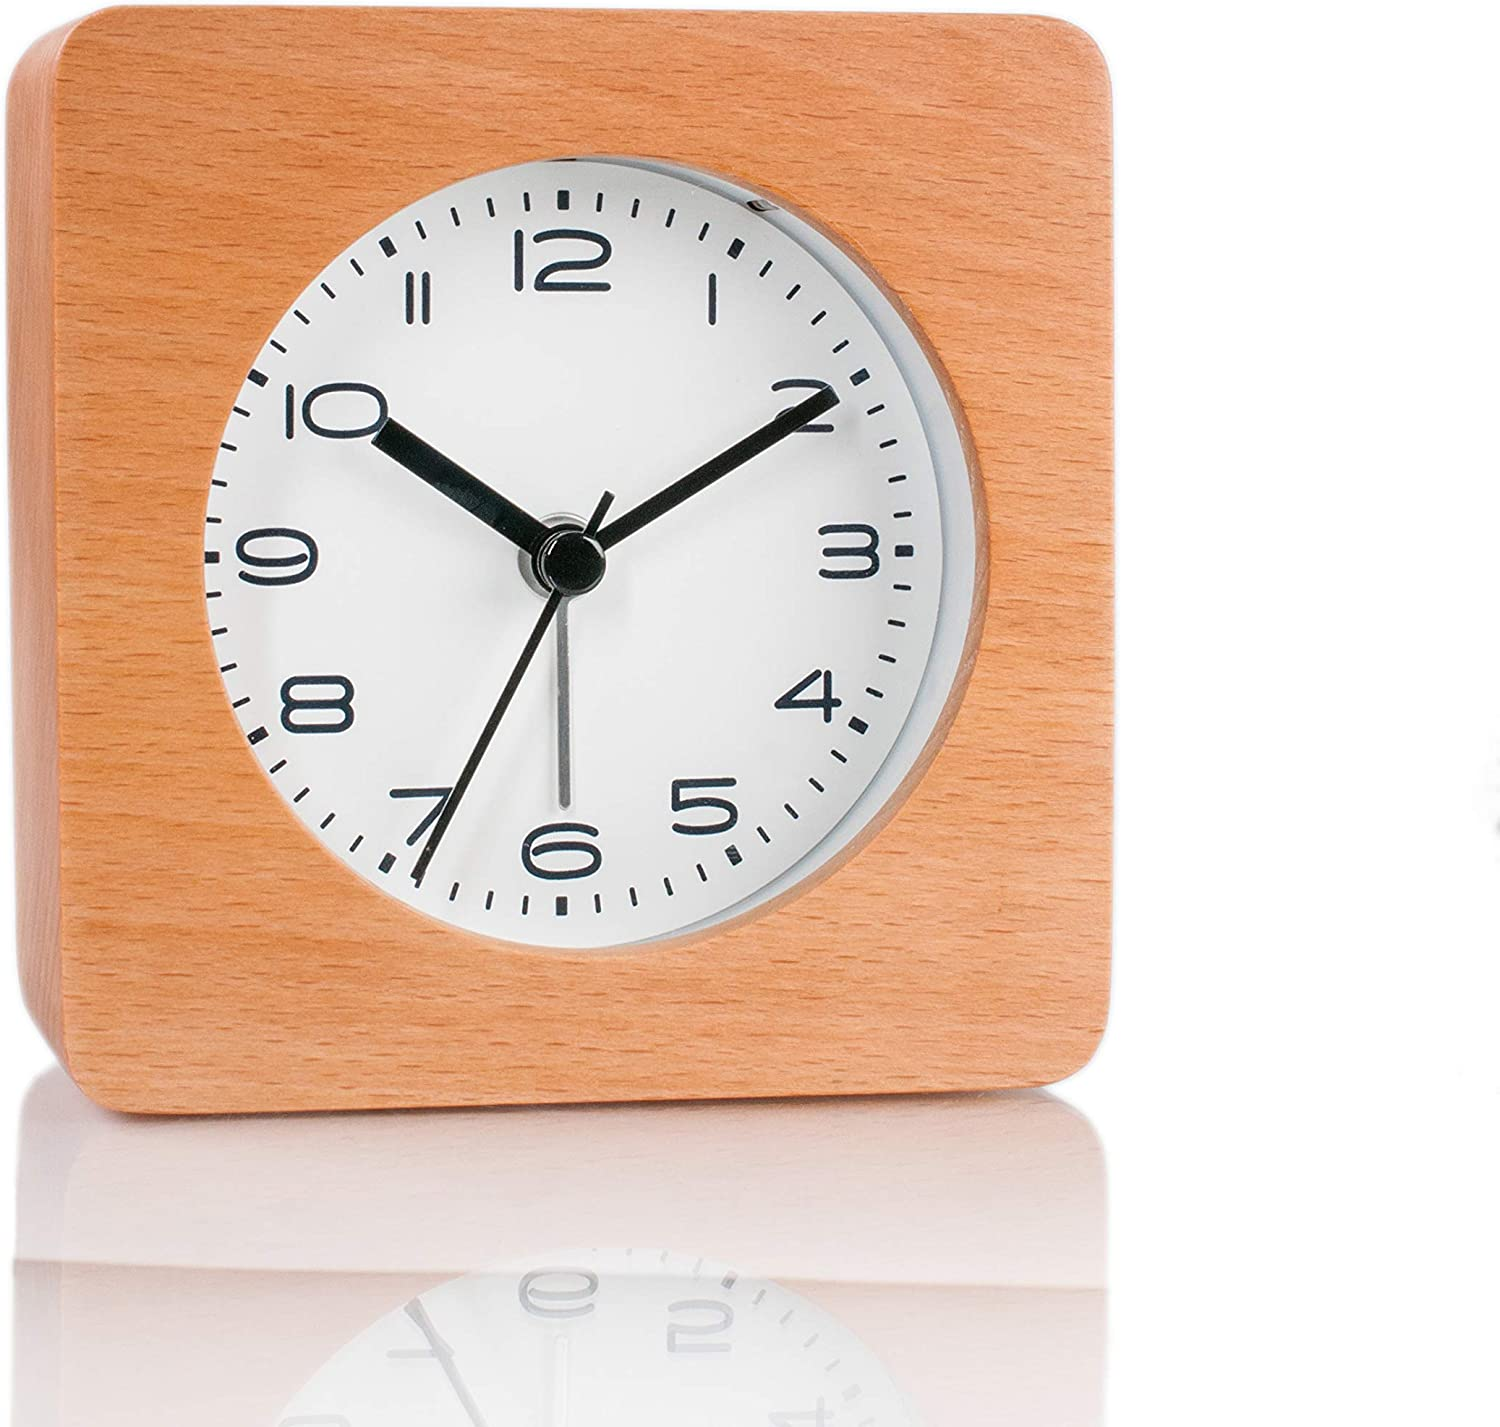 Courier shipping free shipping Artinova Fees free Wooden Alarm Clock Outlook Square Hand Classic